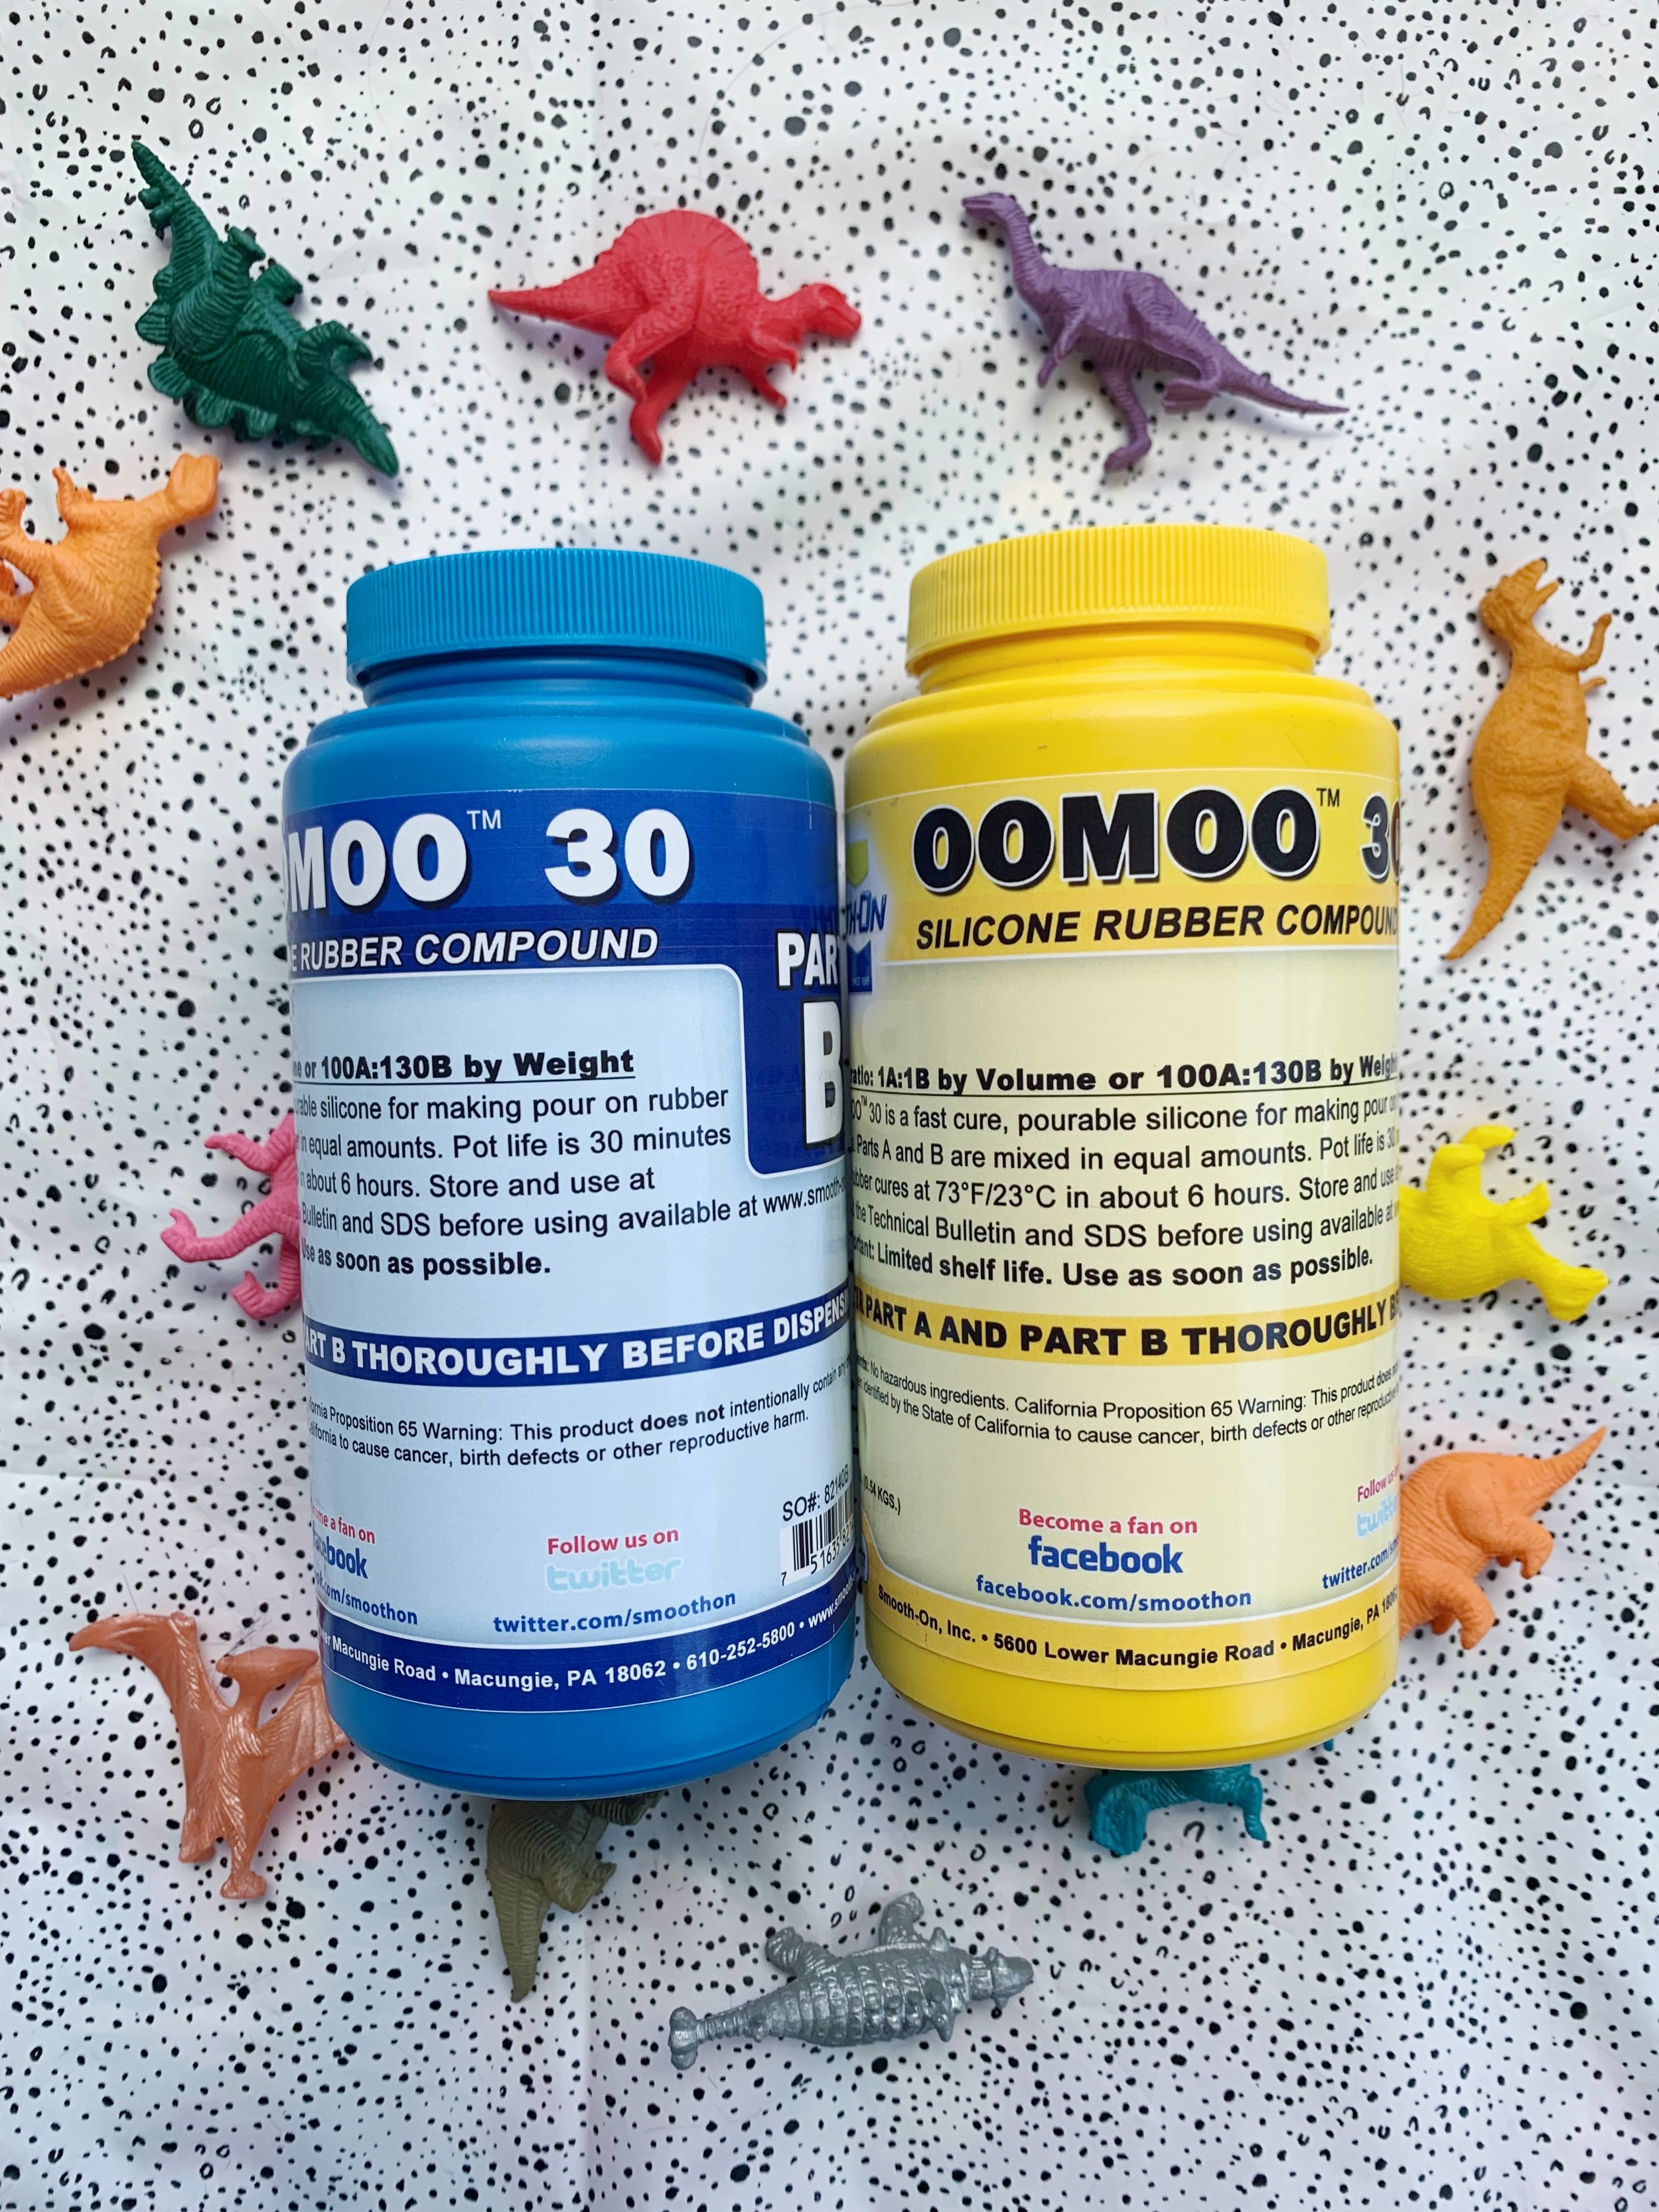 Oomoo 30 is a 1:1 ratio mold making material